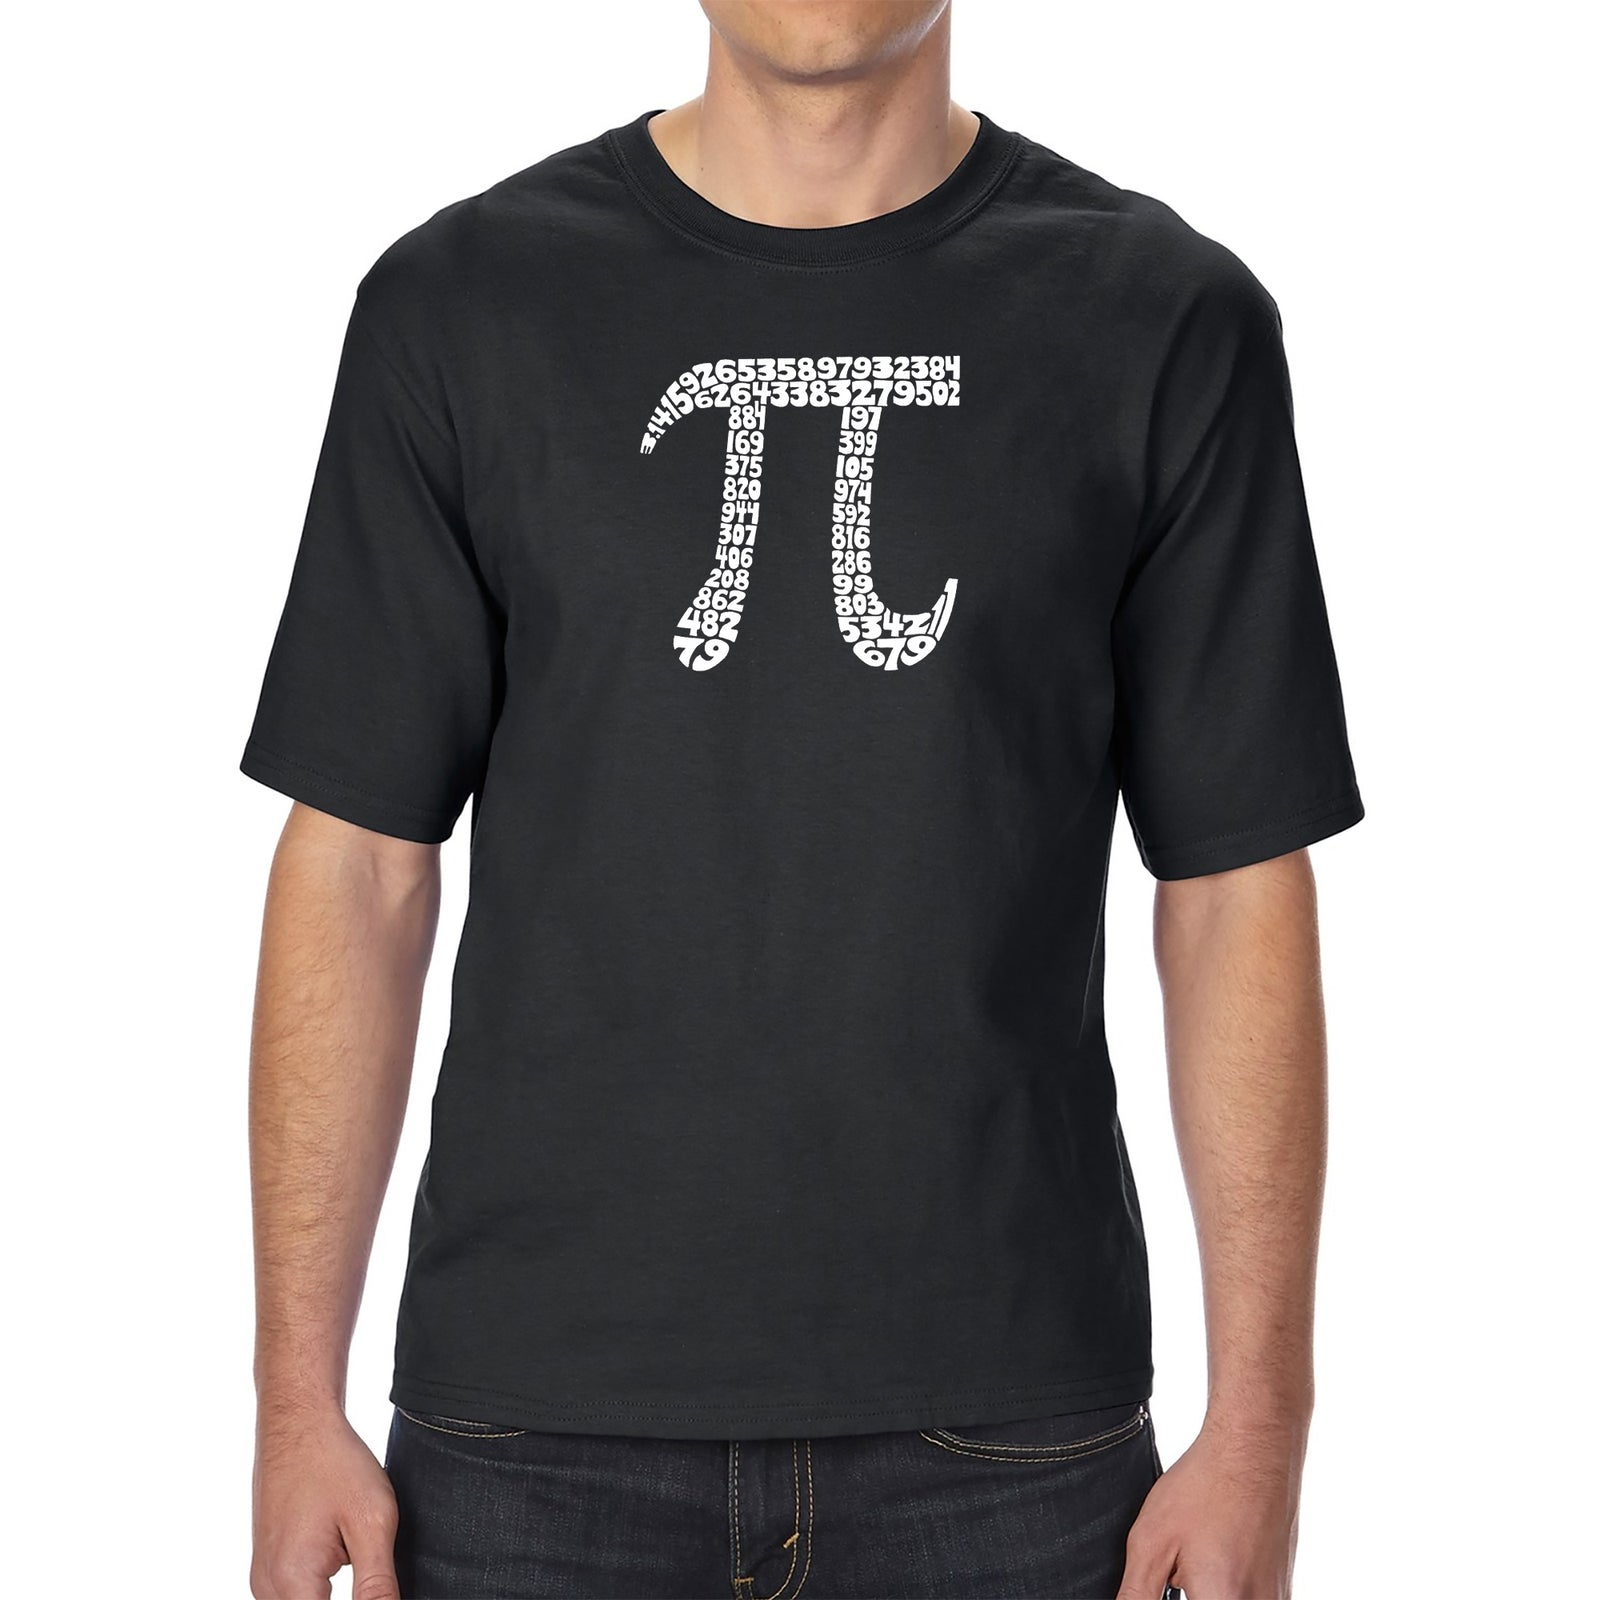 Men's Tall and Long Word Art T-shirt - THE FIRST 100 DIGITS OF PI